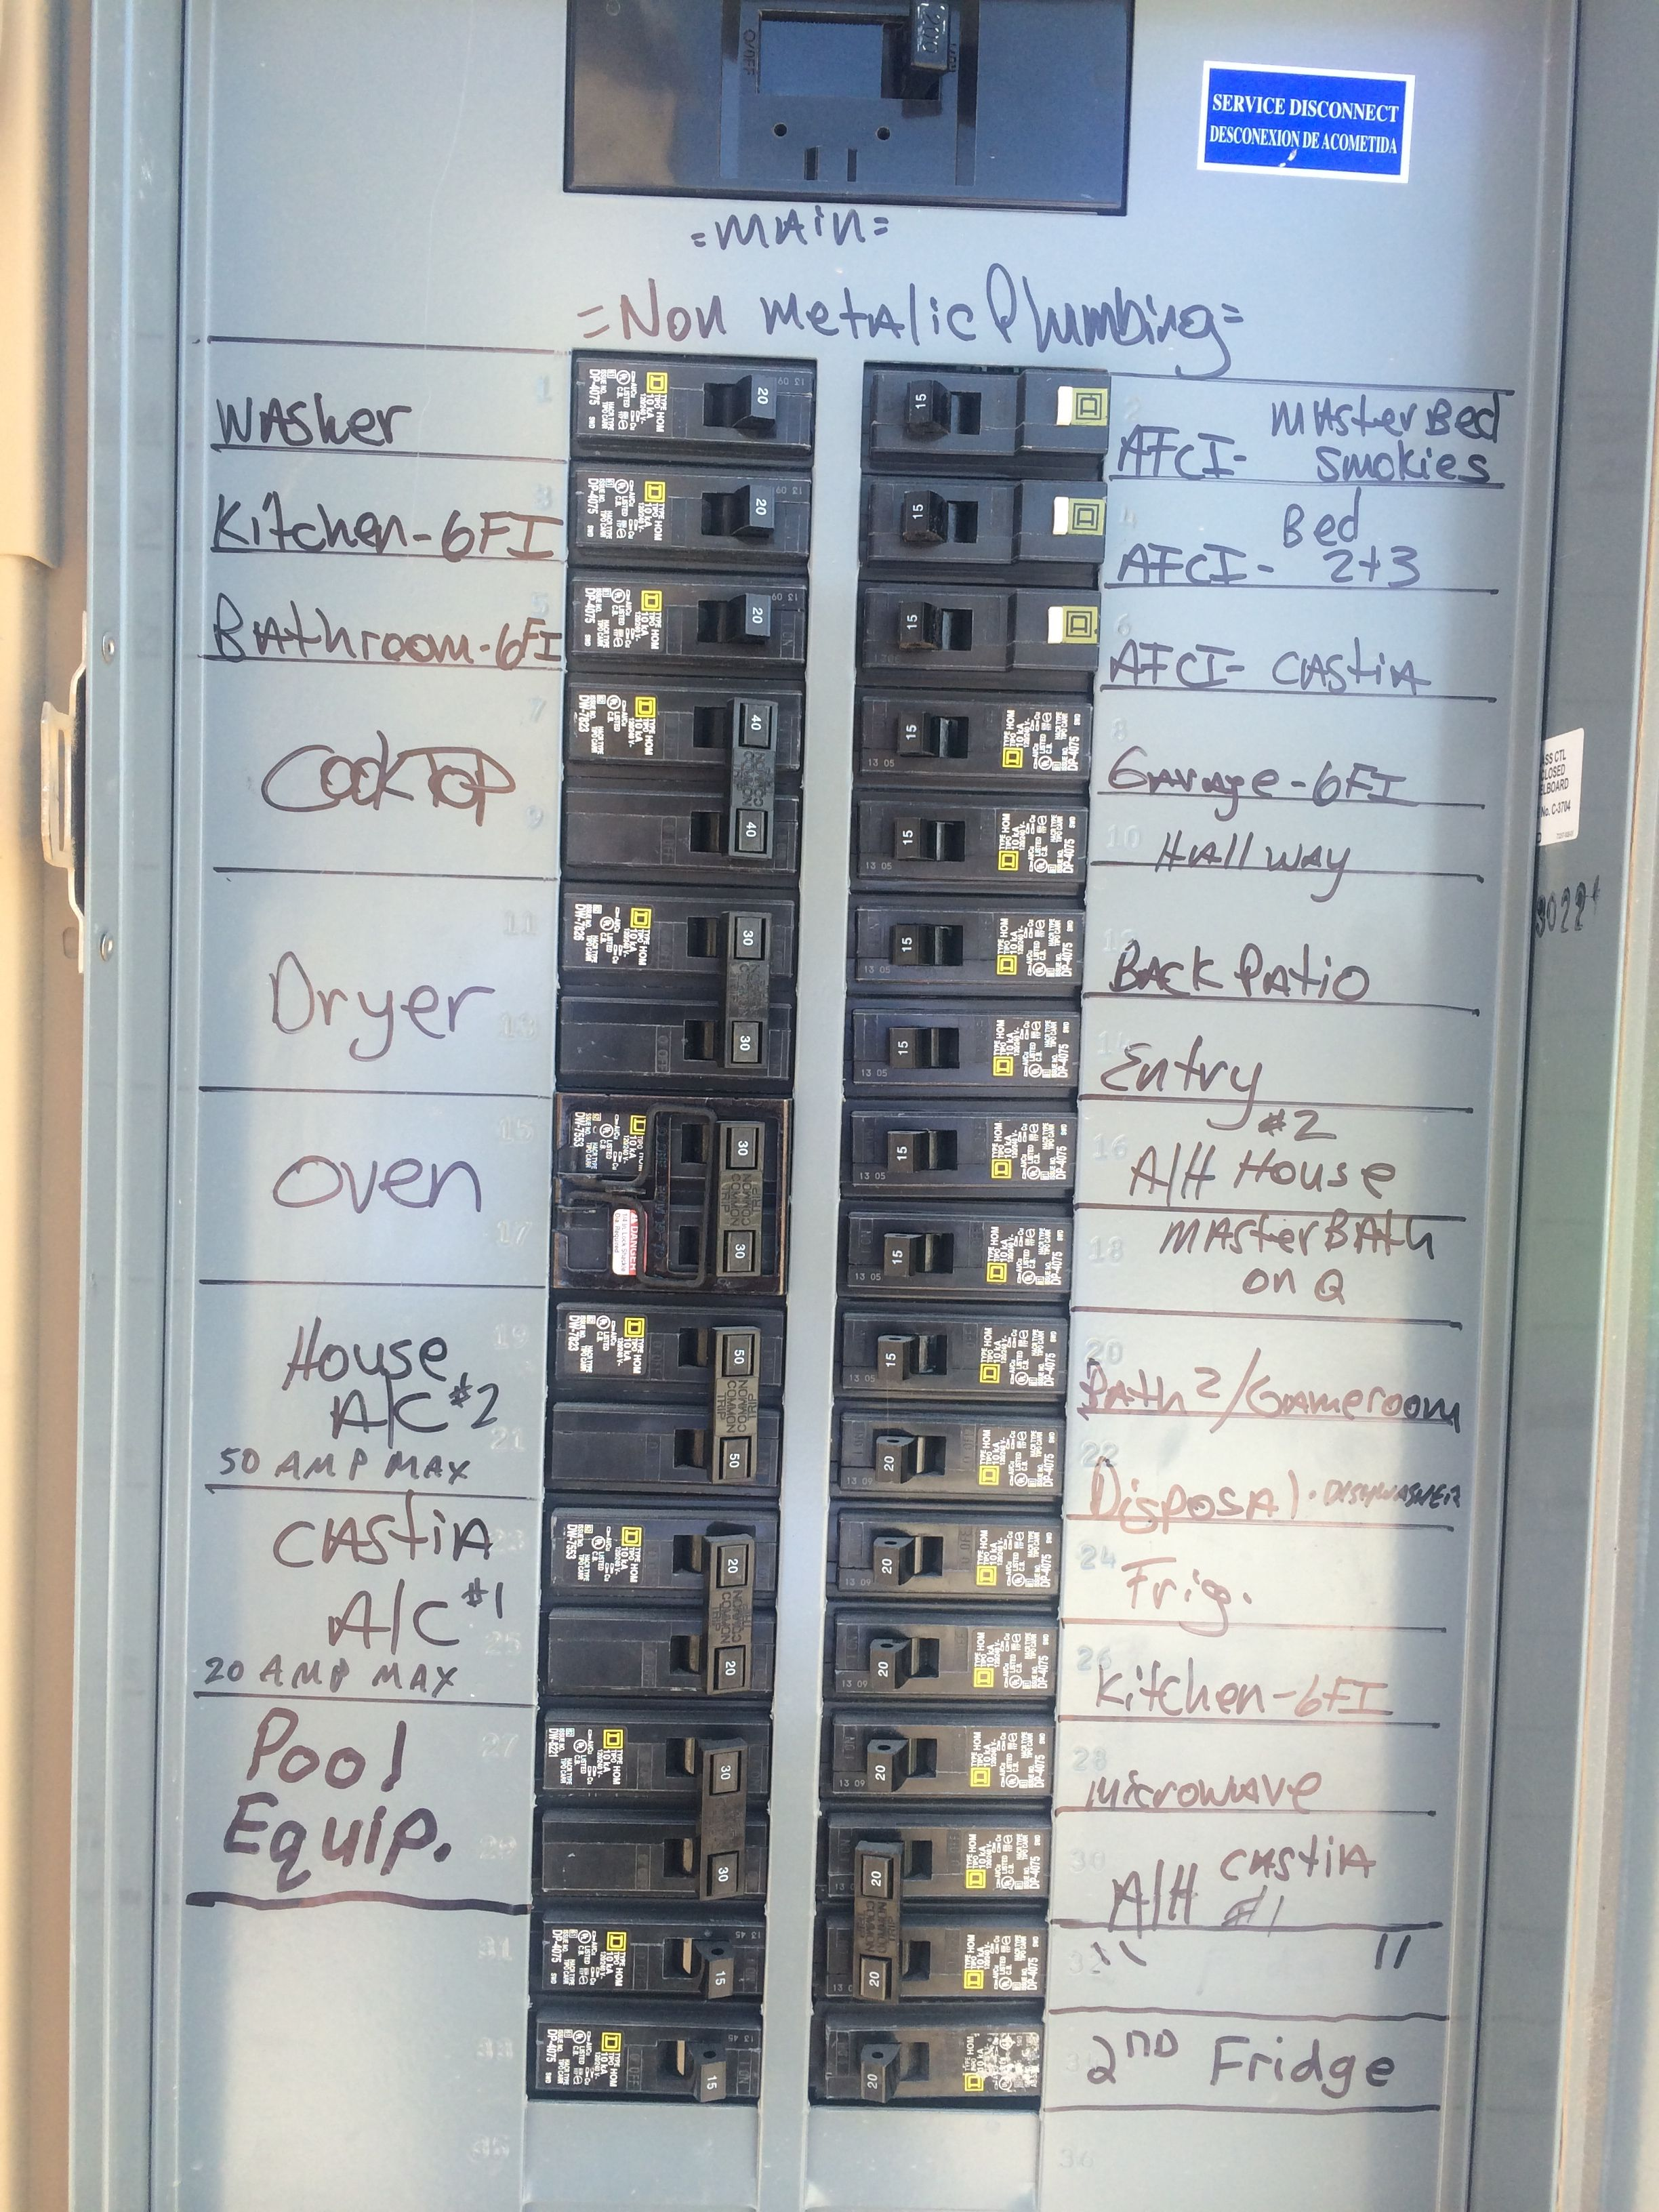 Murray 200 Auto Electrical Wiring Diagram Amp Service Panel 400